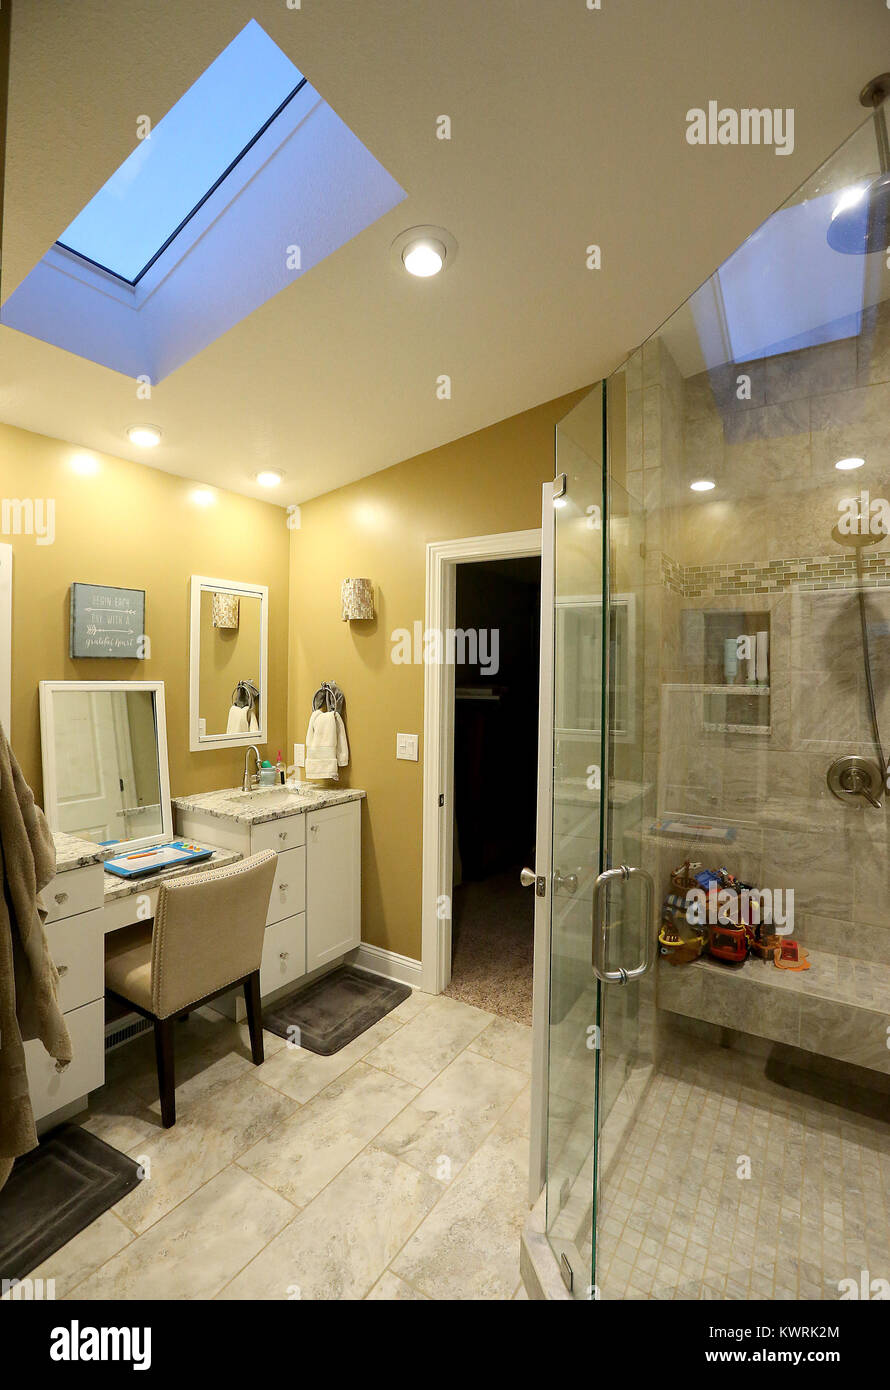 Bettendorf, Iowa, USA. 22nd Feb, 2017. The master bathroom does not have a tub, but has three shower heads and plenty - Stock Image